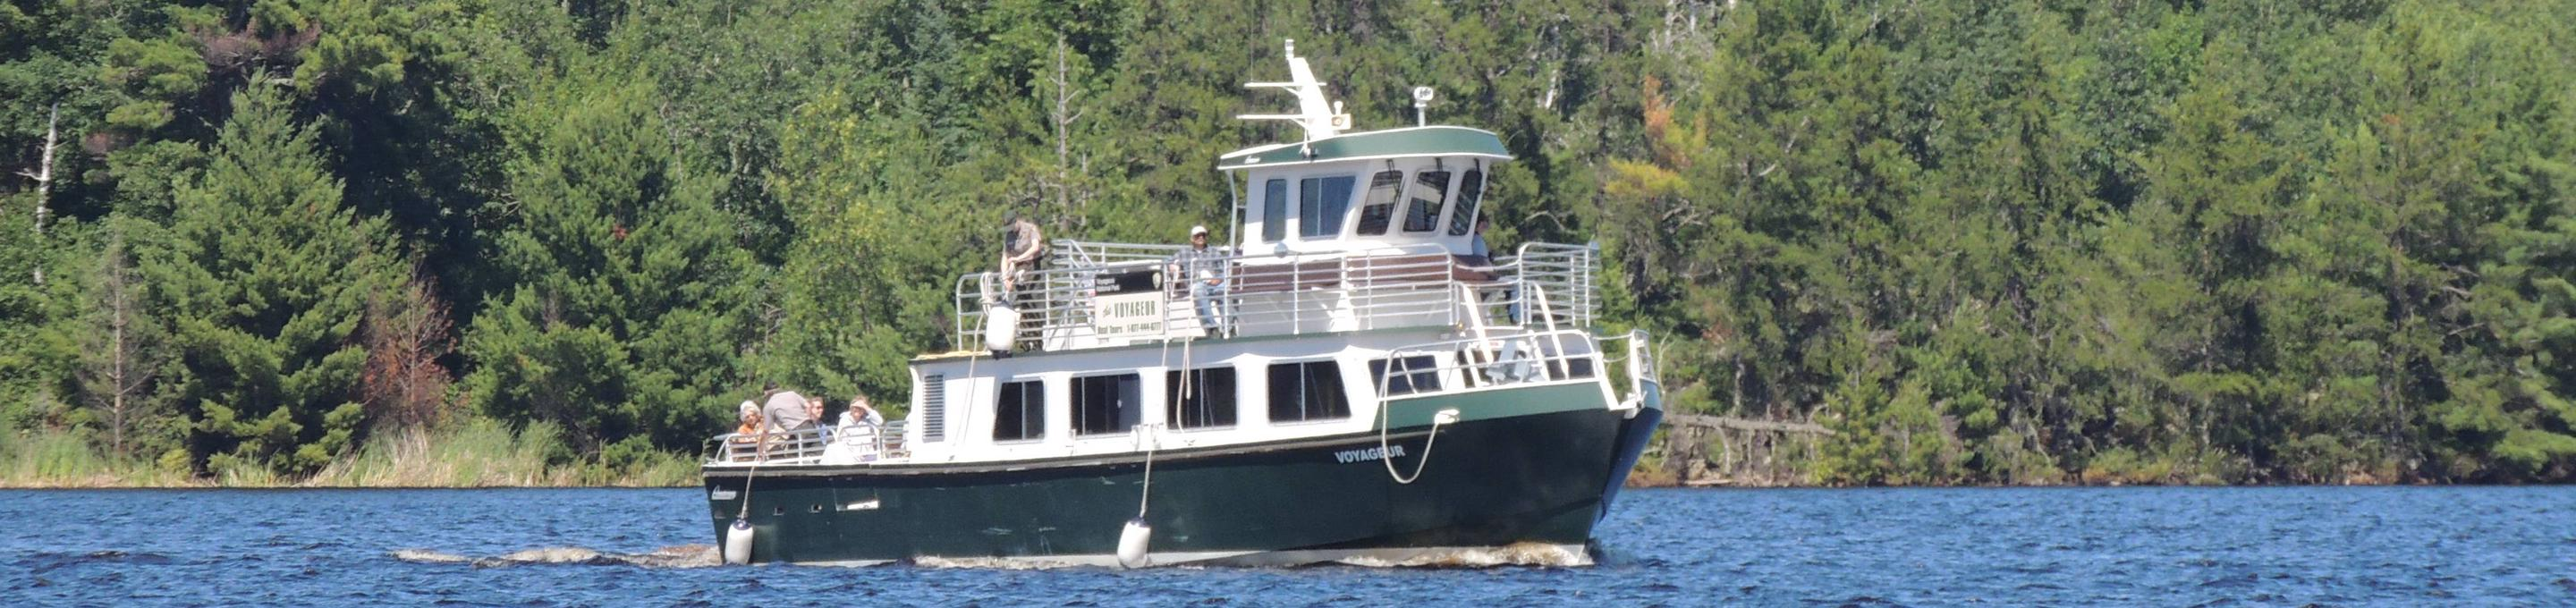 The Voyageur Tour Boat on the waters of Rainy LakeThe Voyageur Tour Boat travels the waters of Rainy Lake